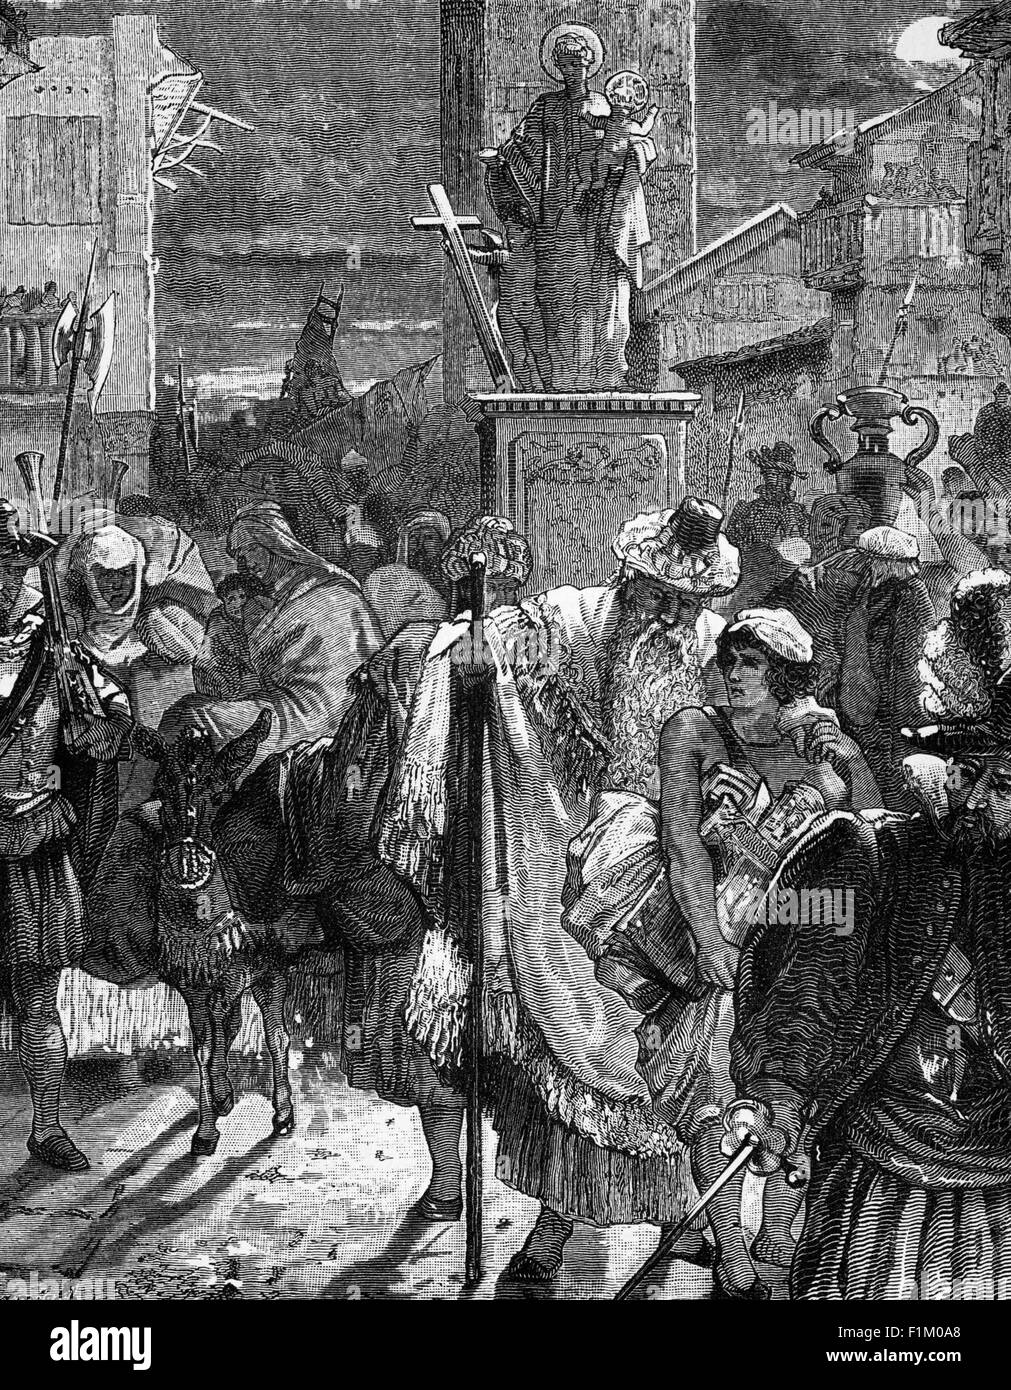 The Expulsion of the Islamic Moors from Spain in 1609 - 1610. - Stock Image